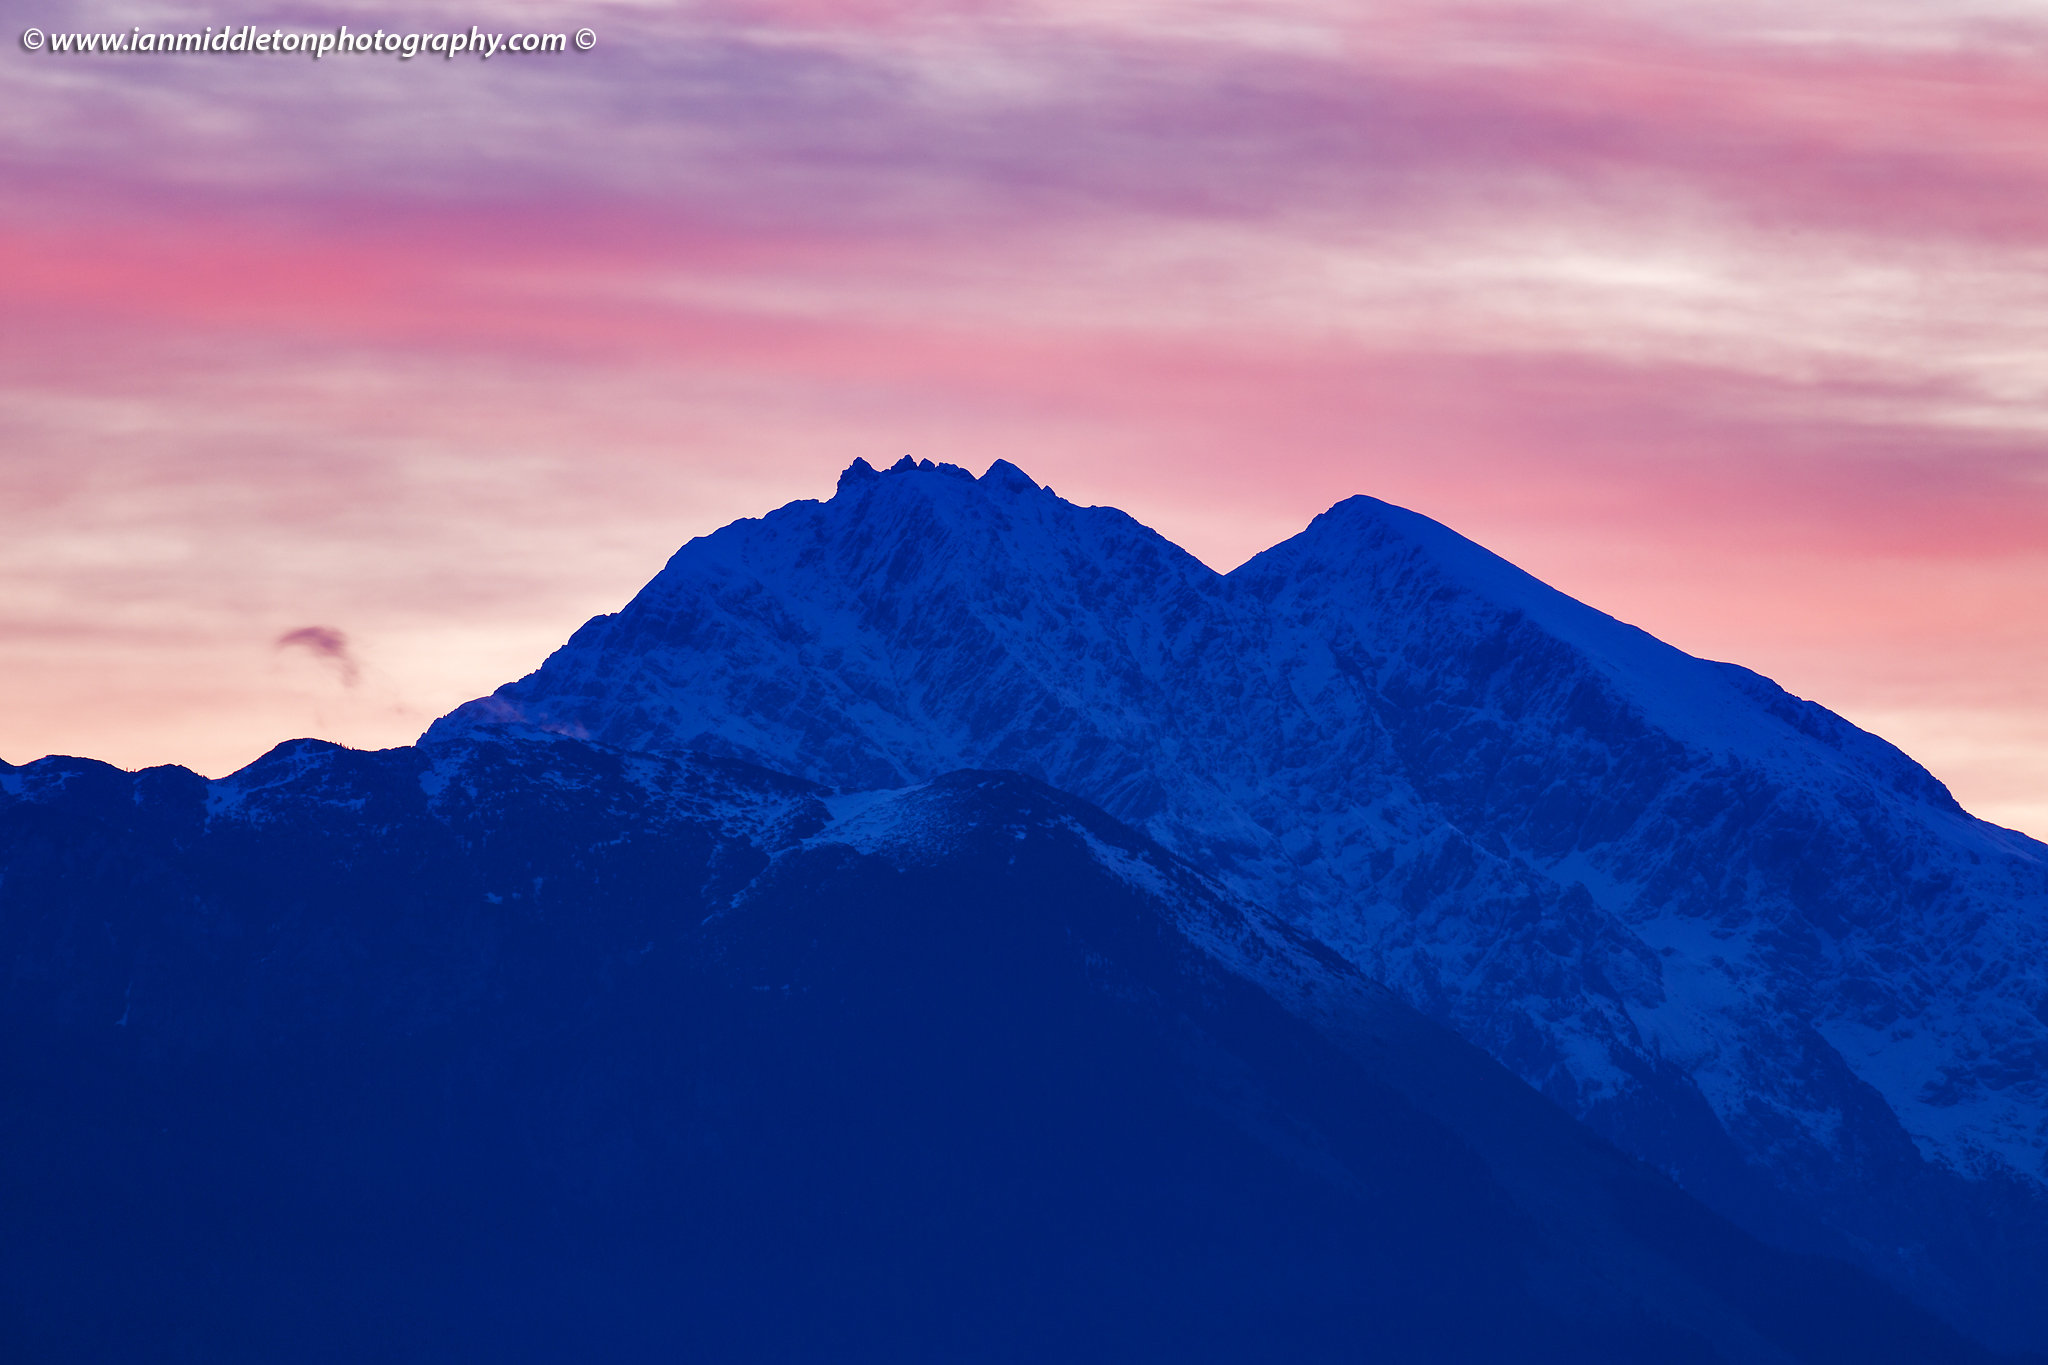 Mount Kocna at sunrise, Kamnik Alps, Slovenia.